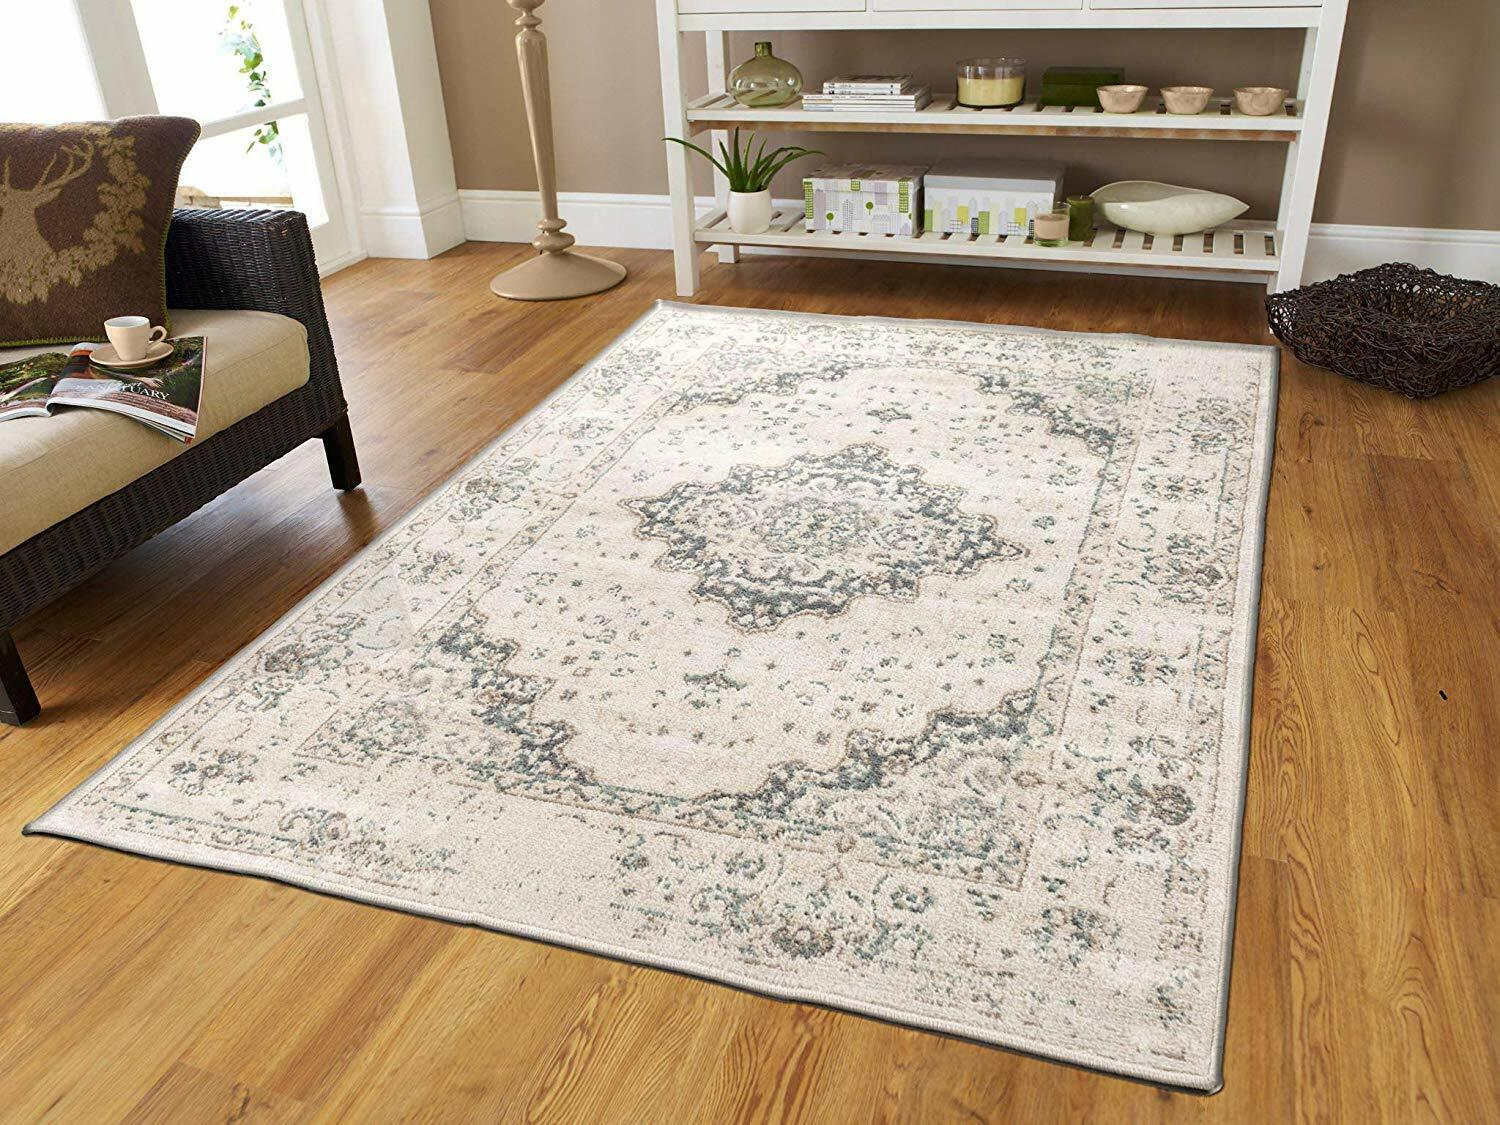 Traditional Distressed Area Rug 8x10 Large Rugs for Living R